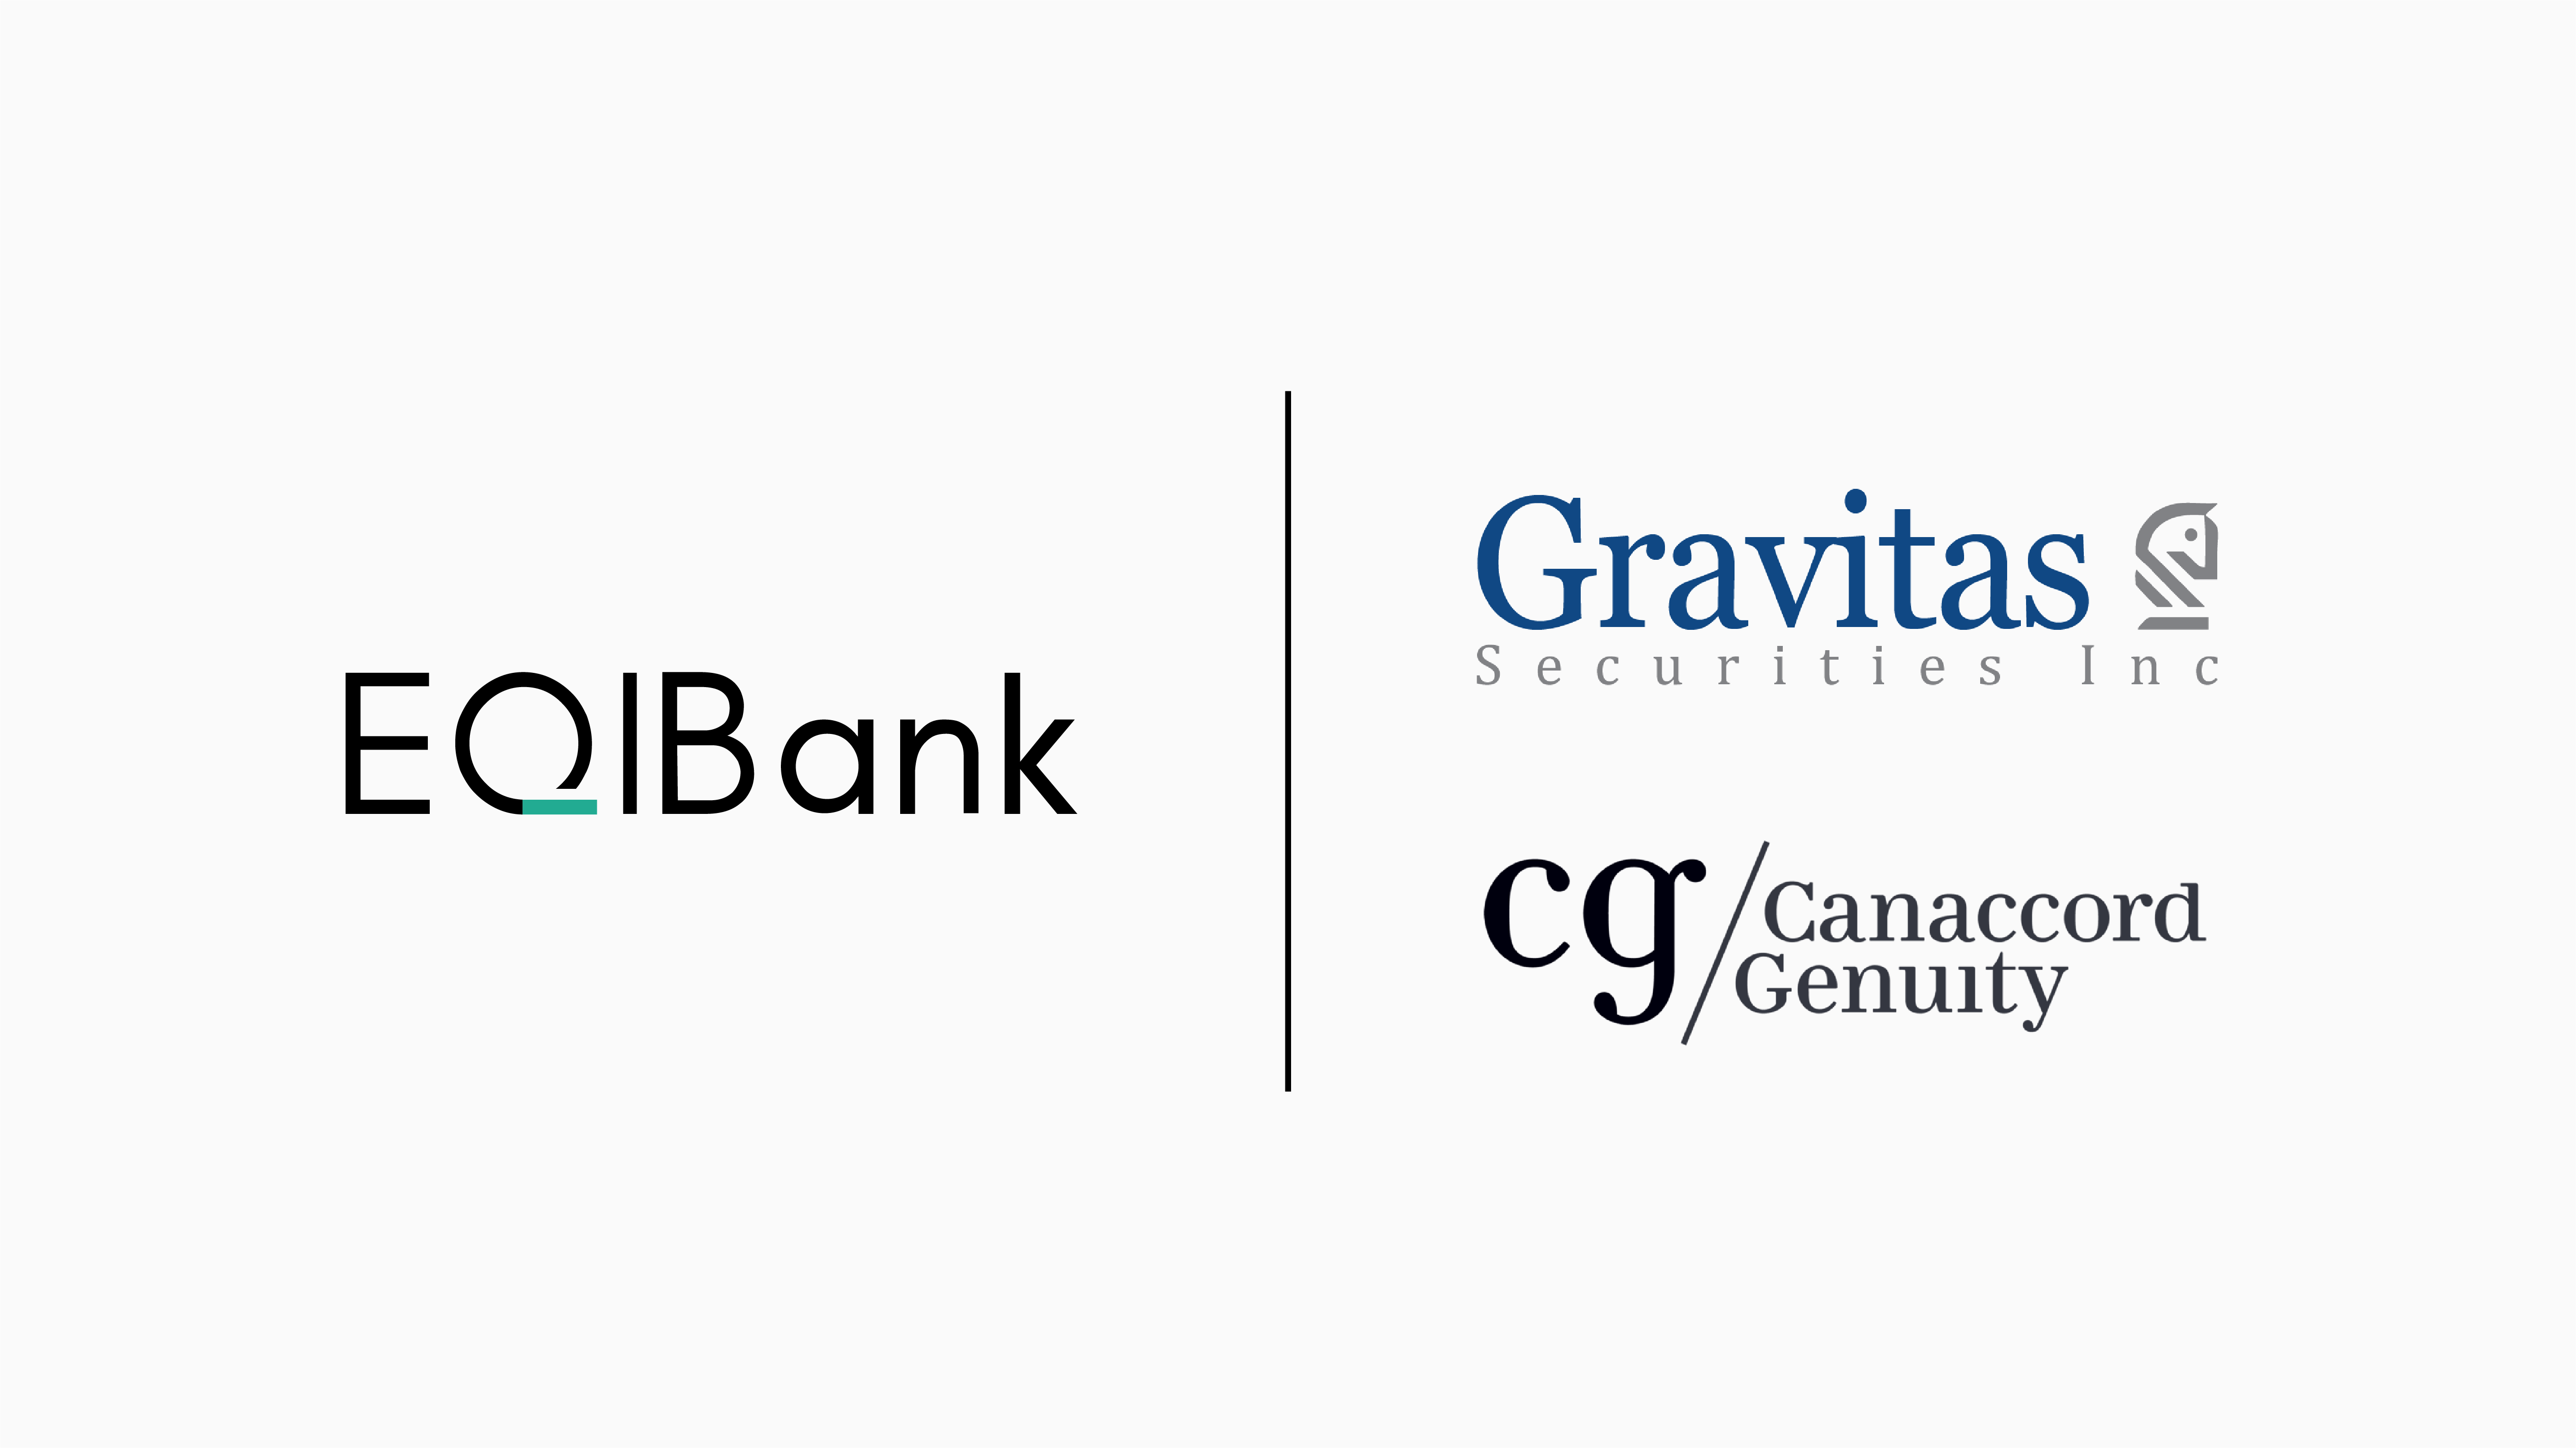 EQIBank Closes Oversubscribed $12.5 Million Series A Round Led by Canaccord Genuity and Gravitas Securities